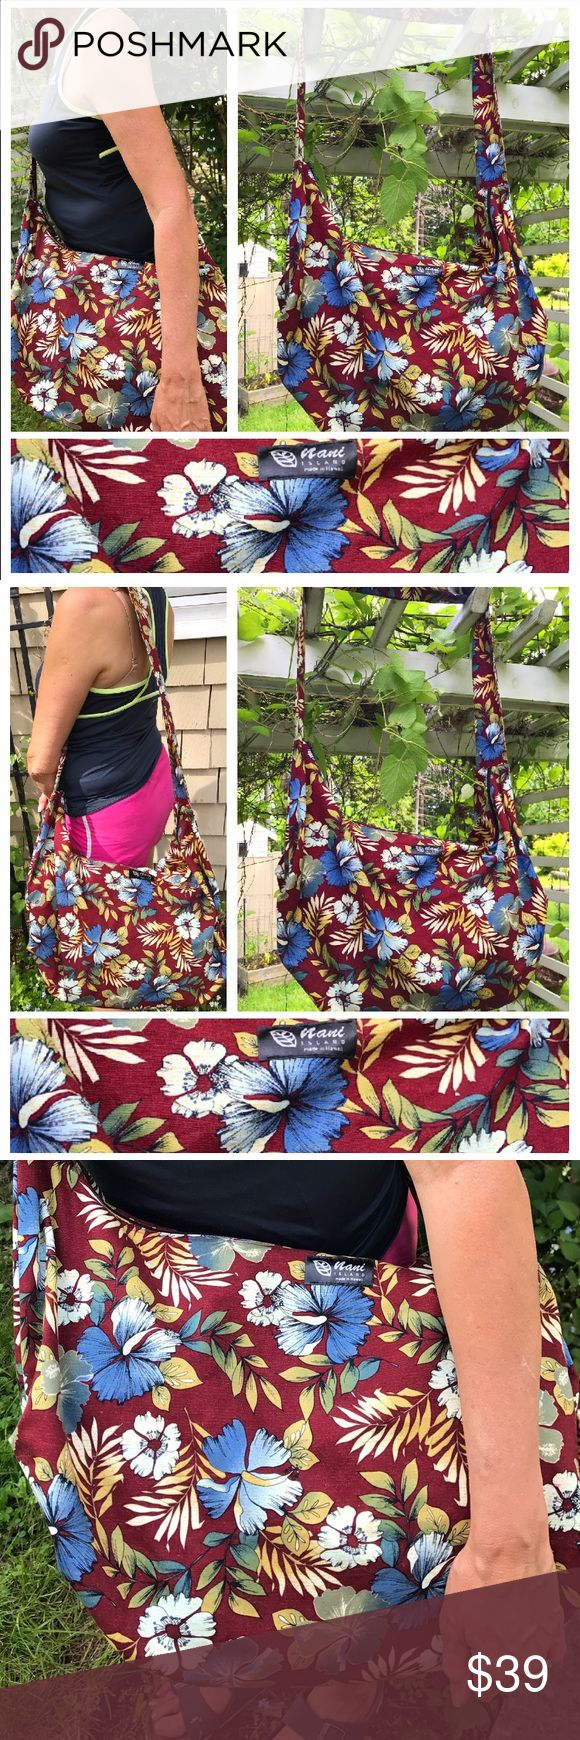 "❤️ ❤️ 1-HOUR SALE❤️ HAWAIIAN MADE HAWAII XL HAWAIIAN HOBO  cross body BAG MADE IN HAWII by Nani Island Maroon w tropical Hawaiian multi-color flowers 25"" by 14.5"" 2 3/4 "" handle strap width handle length is 36 1/2 "" long machine washable. Great weekend bag! Summer beach traveling shopping ! Nani Made in Hawaii Bags Shoulder Bags"